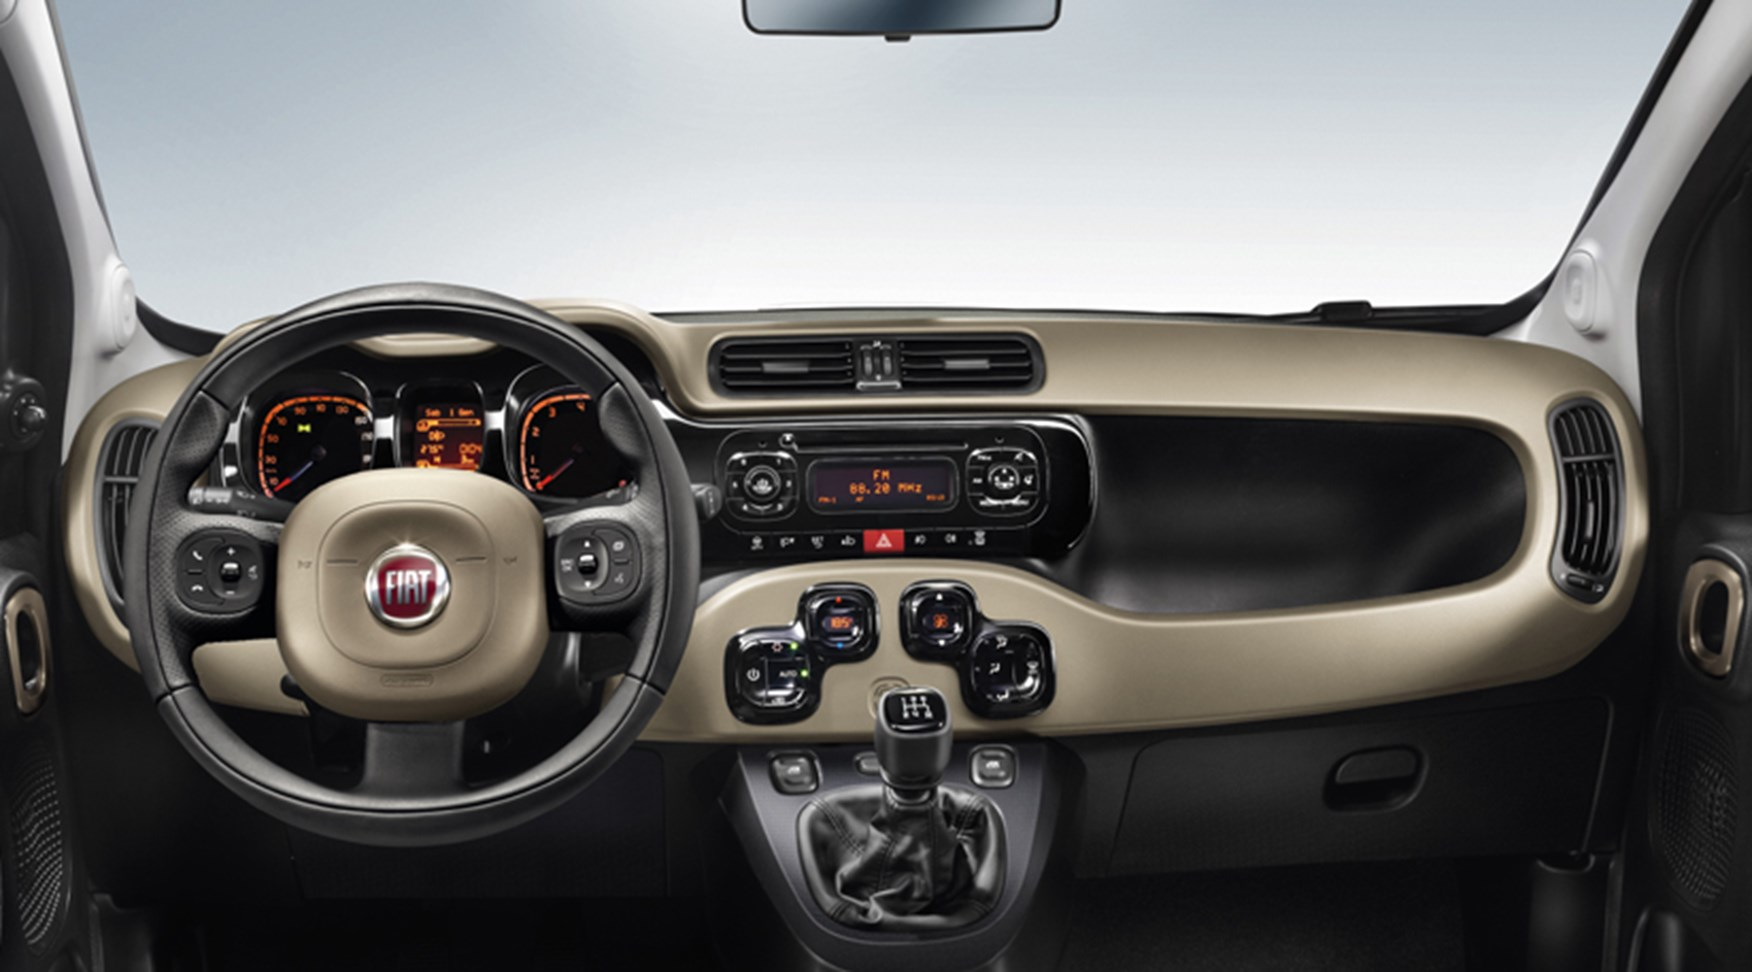 Fiat Panda 2012 First Official Pictures By Car Magazine